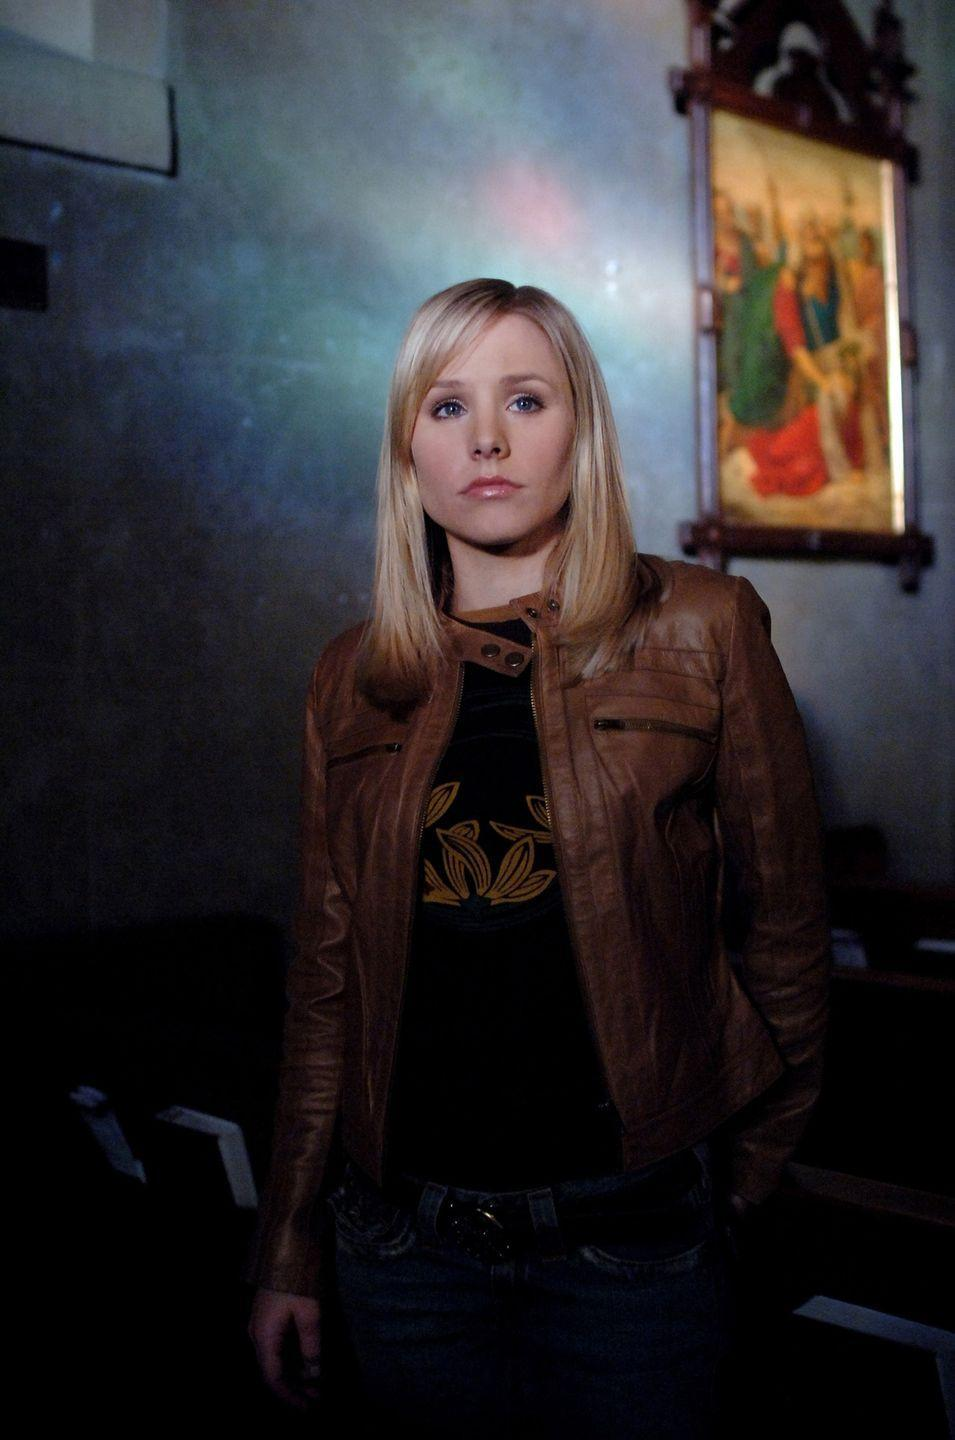 "<p>In the first episode, Veronica's friend Wallace says this iconic line: ""You're a marshmallow, Veronica Mars—a real Twinkie."" Viewers latched on to the line and started calling themselves <a href=""https://www.cheatsheet.com/entertainment/why-are-veronica-mars-fans-called-marshmallows.html/"" rel=""nofollow noopener"" target=""_blank"" data-ylk=""slk:Marshmallows"" class=""link rapid-noclick-resp"">Marshmallows</a>. You can even buy a <a href=""https://www.redbubble.com/people/chuckdragons/works/28934691-veronica-mars-shes-a-marshmallow?cat_context=u-stationery&grid_pos=16&p=sticker&rbs=81d1bd0a-825c-44db-bf33-bc66a5ecd961&ref=shop_grid&searchTerm=veronica%20mars%20marshmallow"" rel=""nofollow noopener"" target=""_blank"" data-ylk=""slk:laptop sticker"" class=""link rapid-noclick-resp"">laptop sticker</a> with the line on it. </p>"